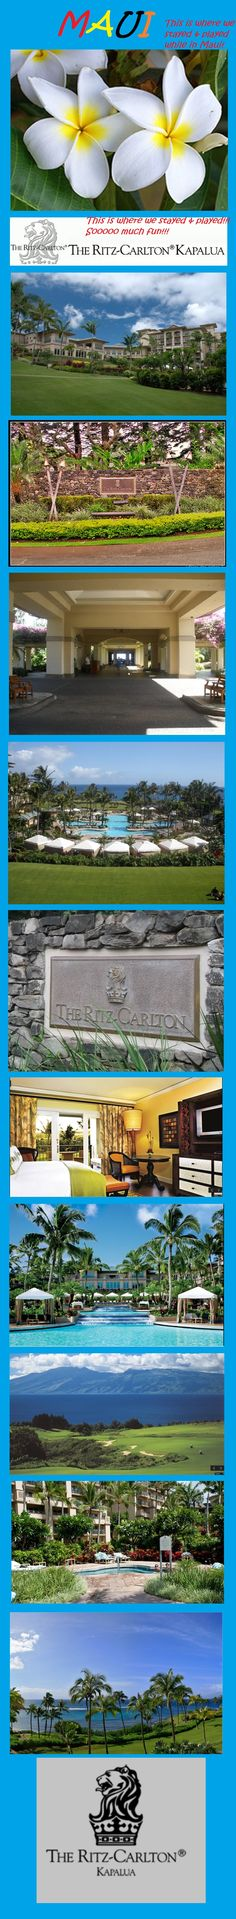 #Maui .... Ritz-Carlton - Kapalua !  Where we stayed and played while in Maui!   So much fun and a really beautiful resort.   Would def go back again!!!